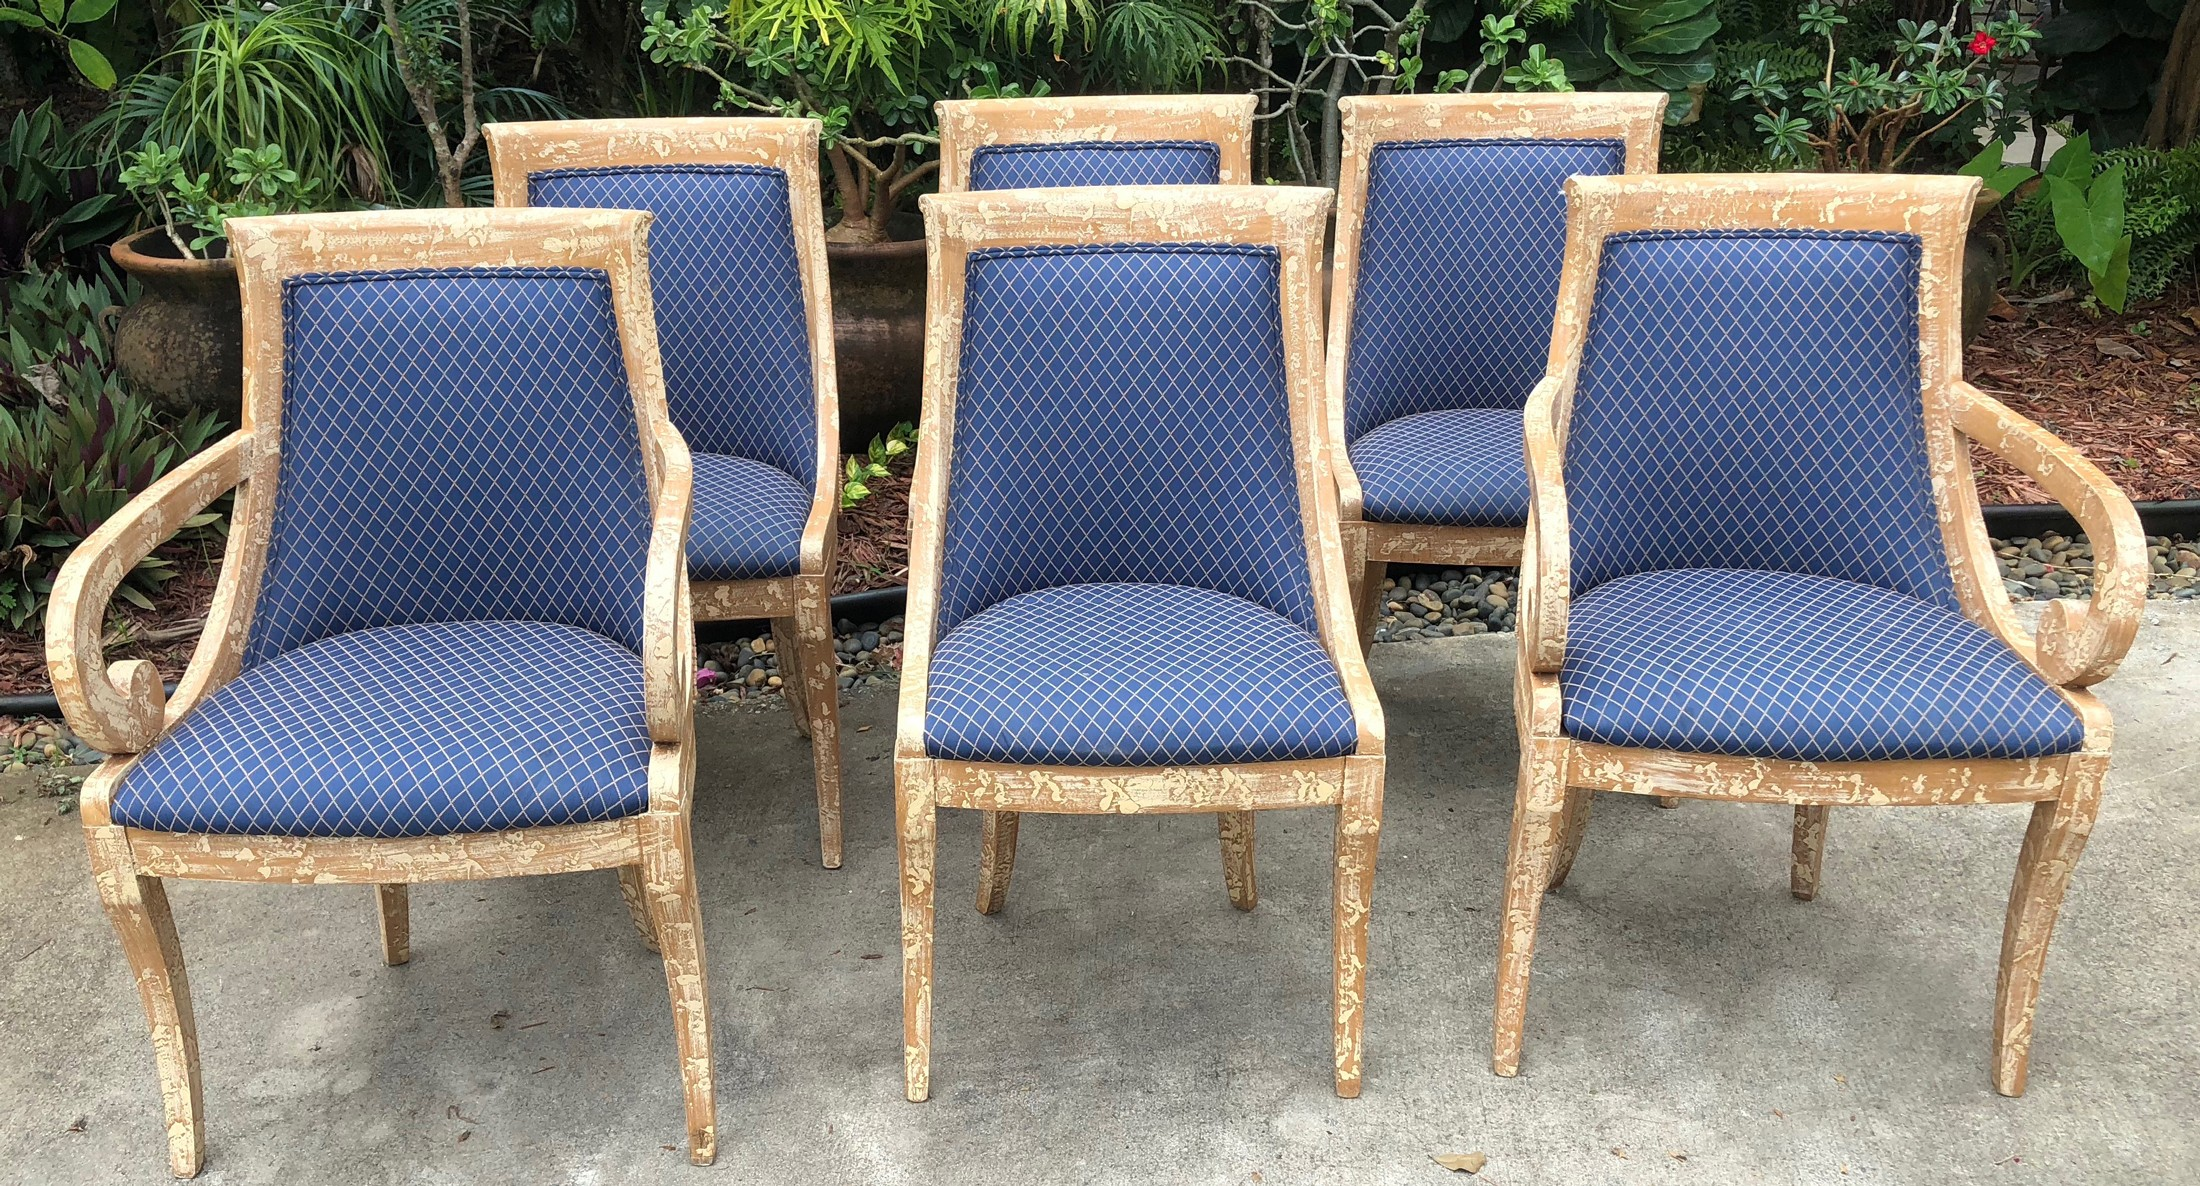 Crackle Finish Chairs (set of 6)